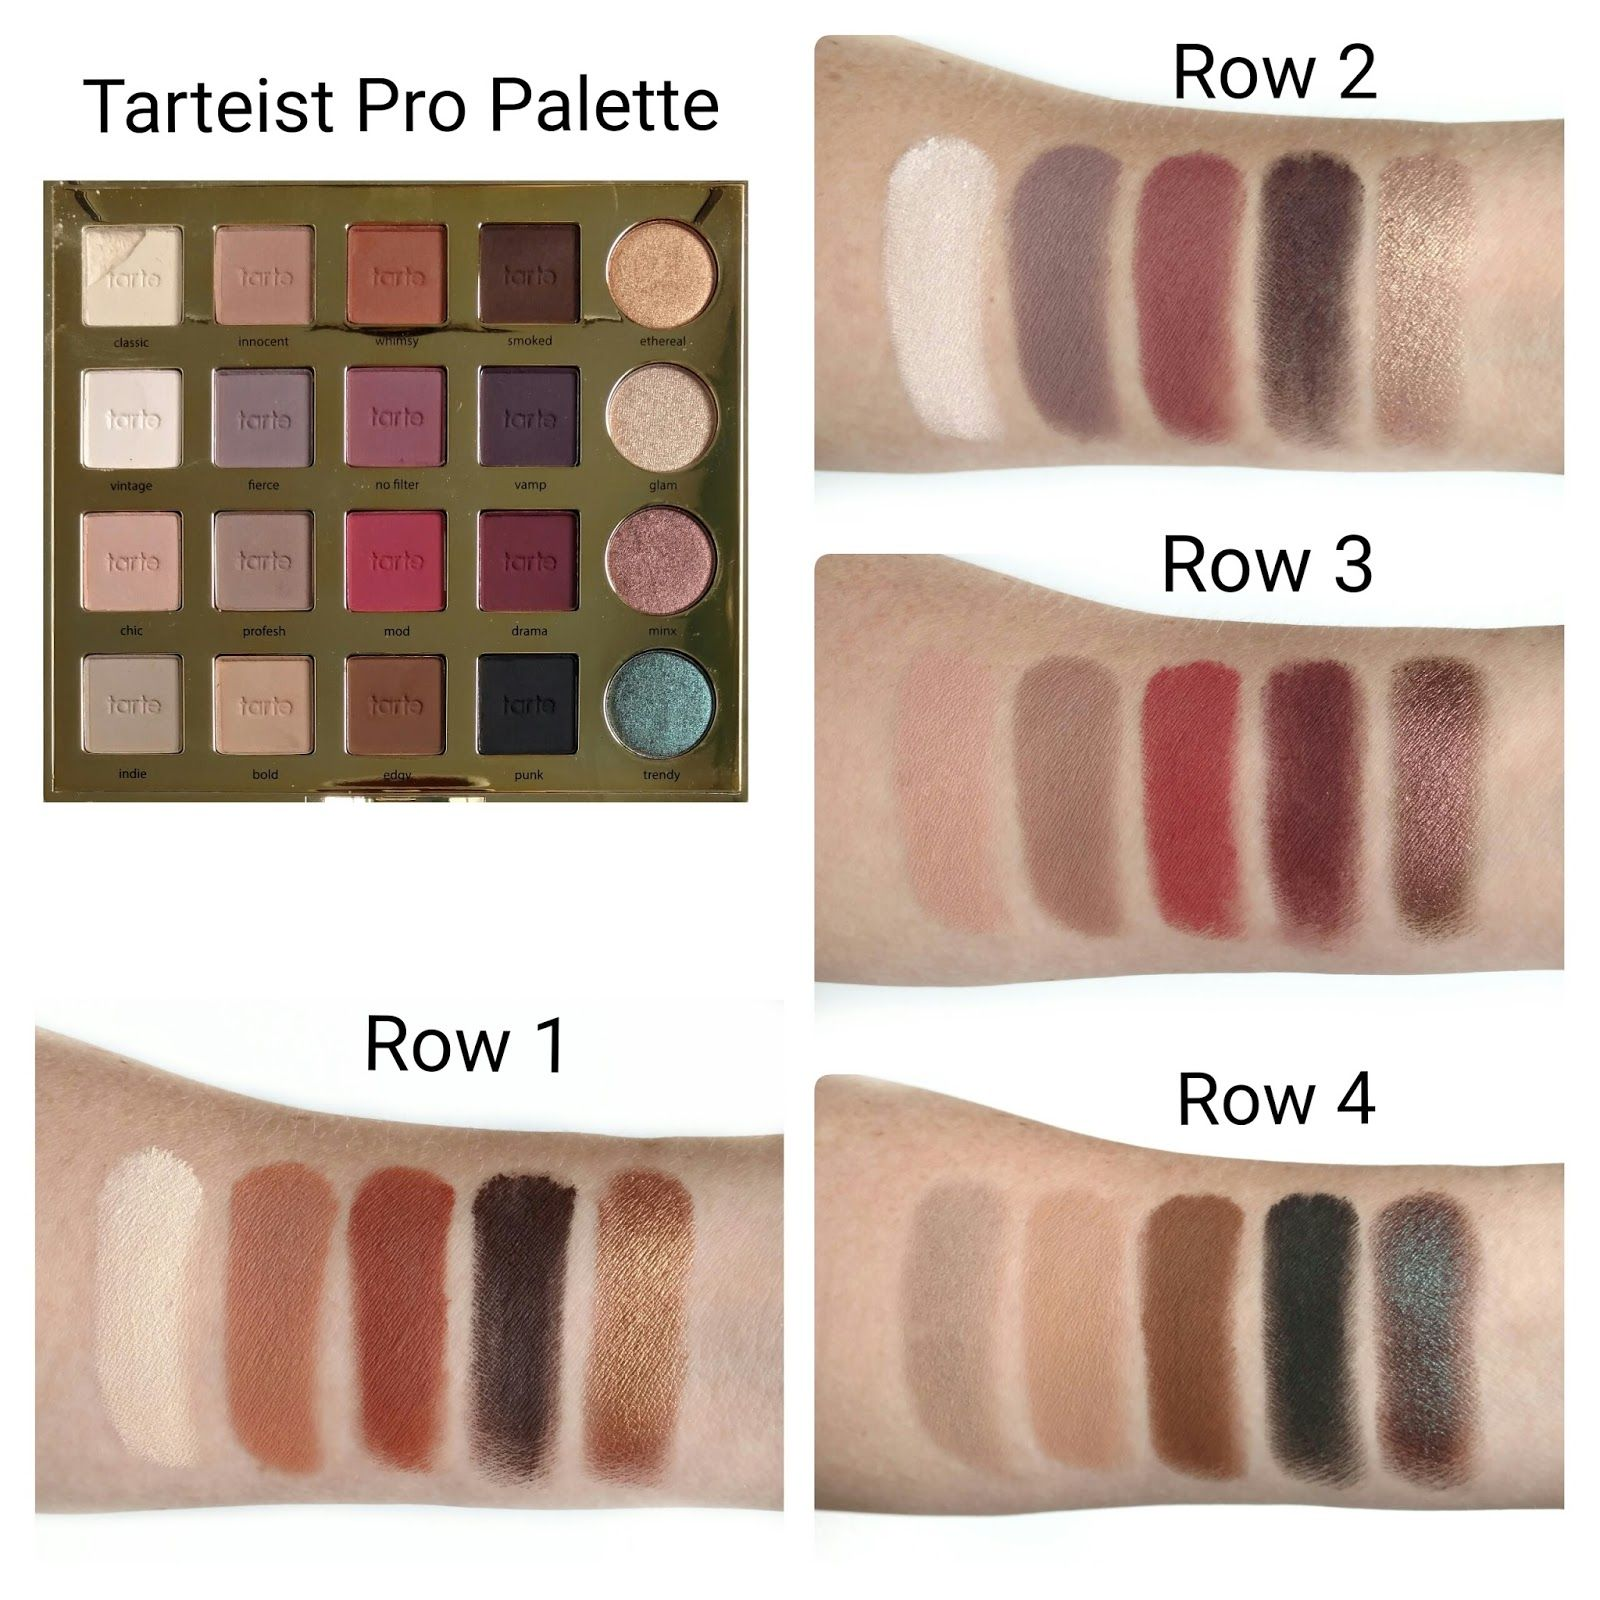 Tarte Tarteist Pro Palette Review | First Impression | Eye Makeup ...